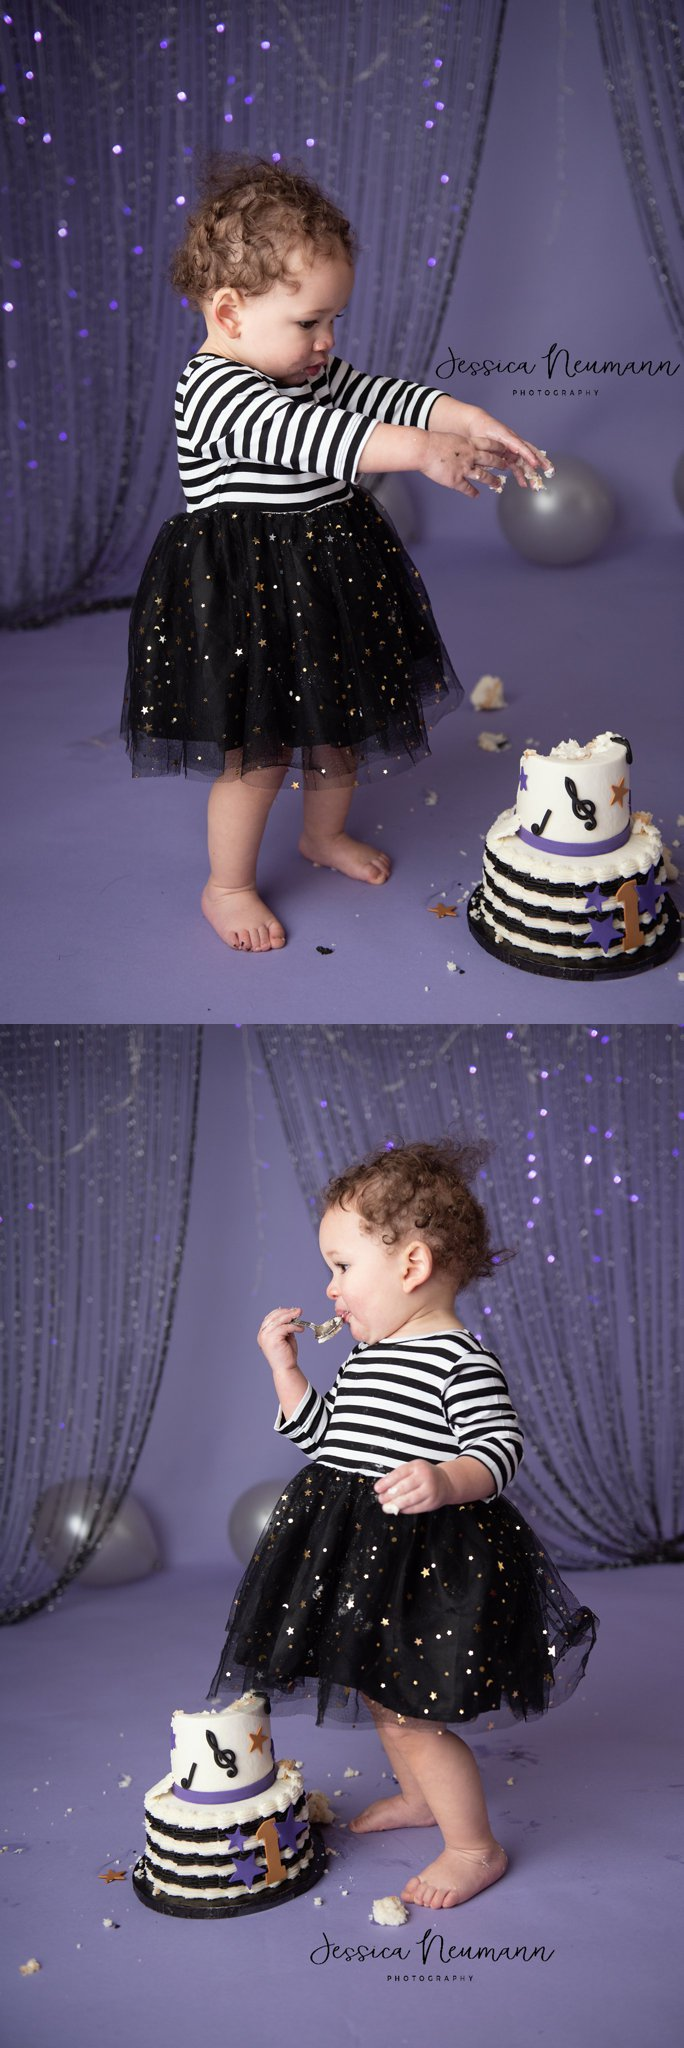 Cake Smash for baby girl, Rockville, MD